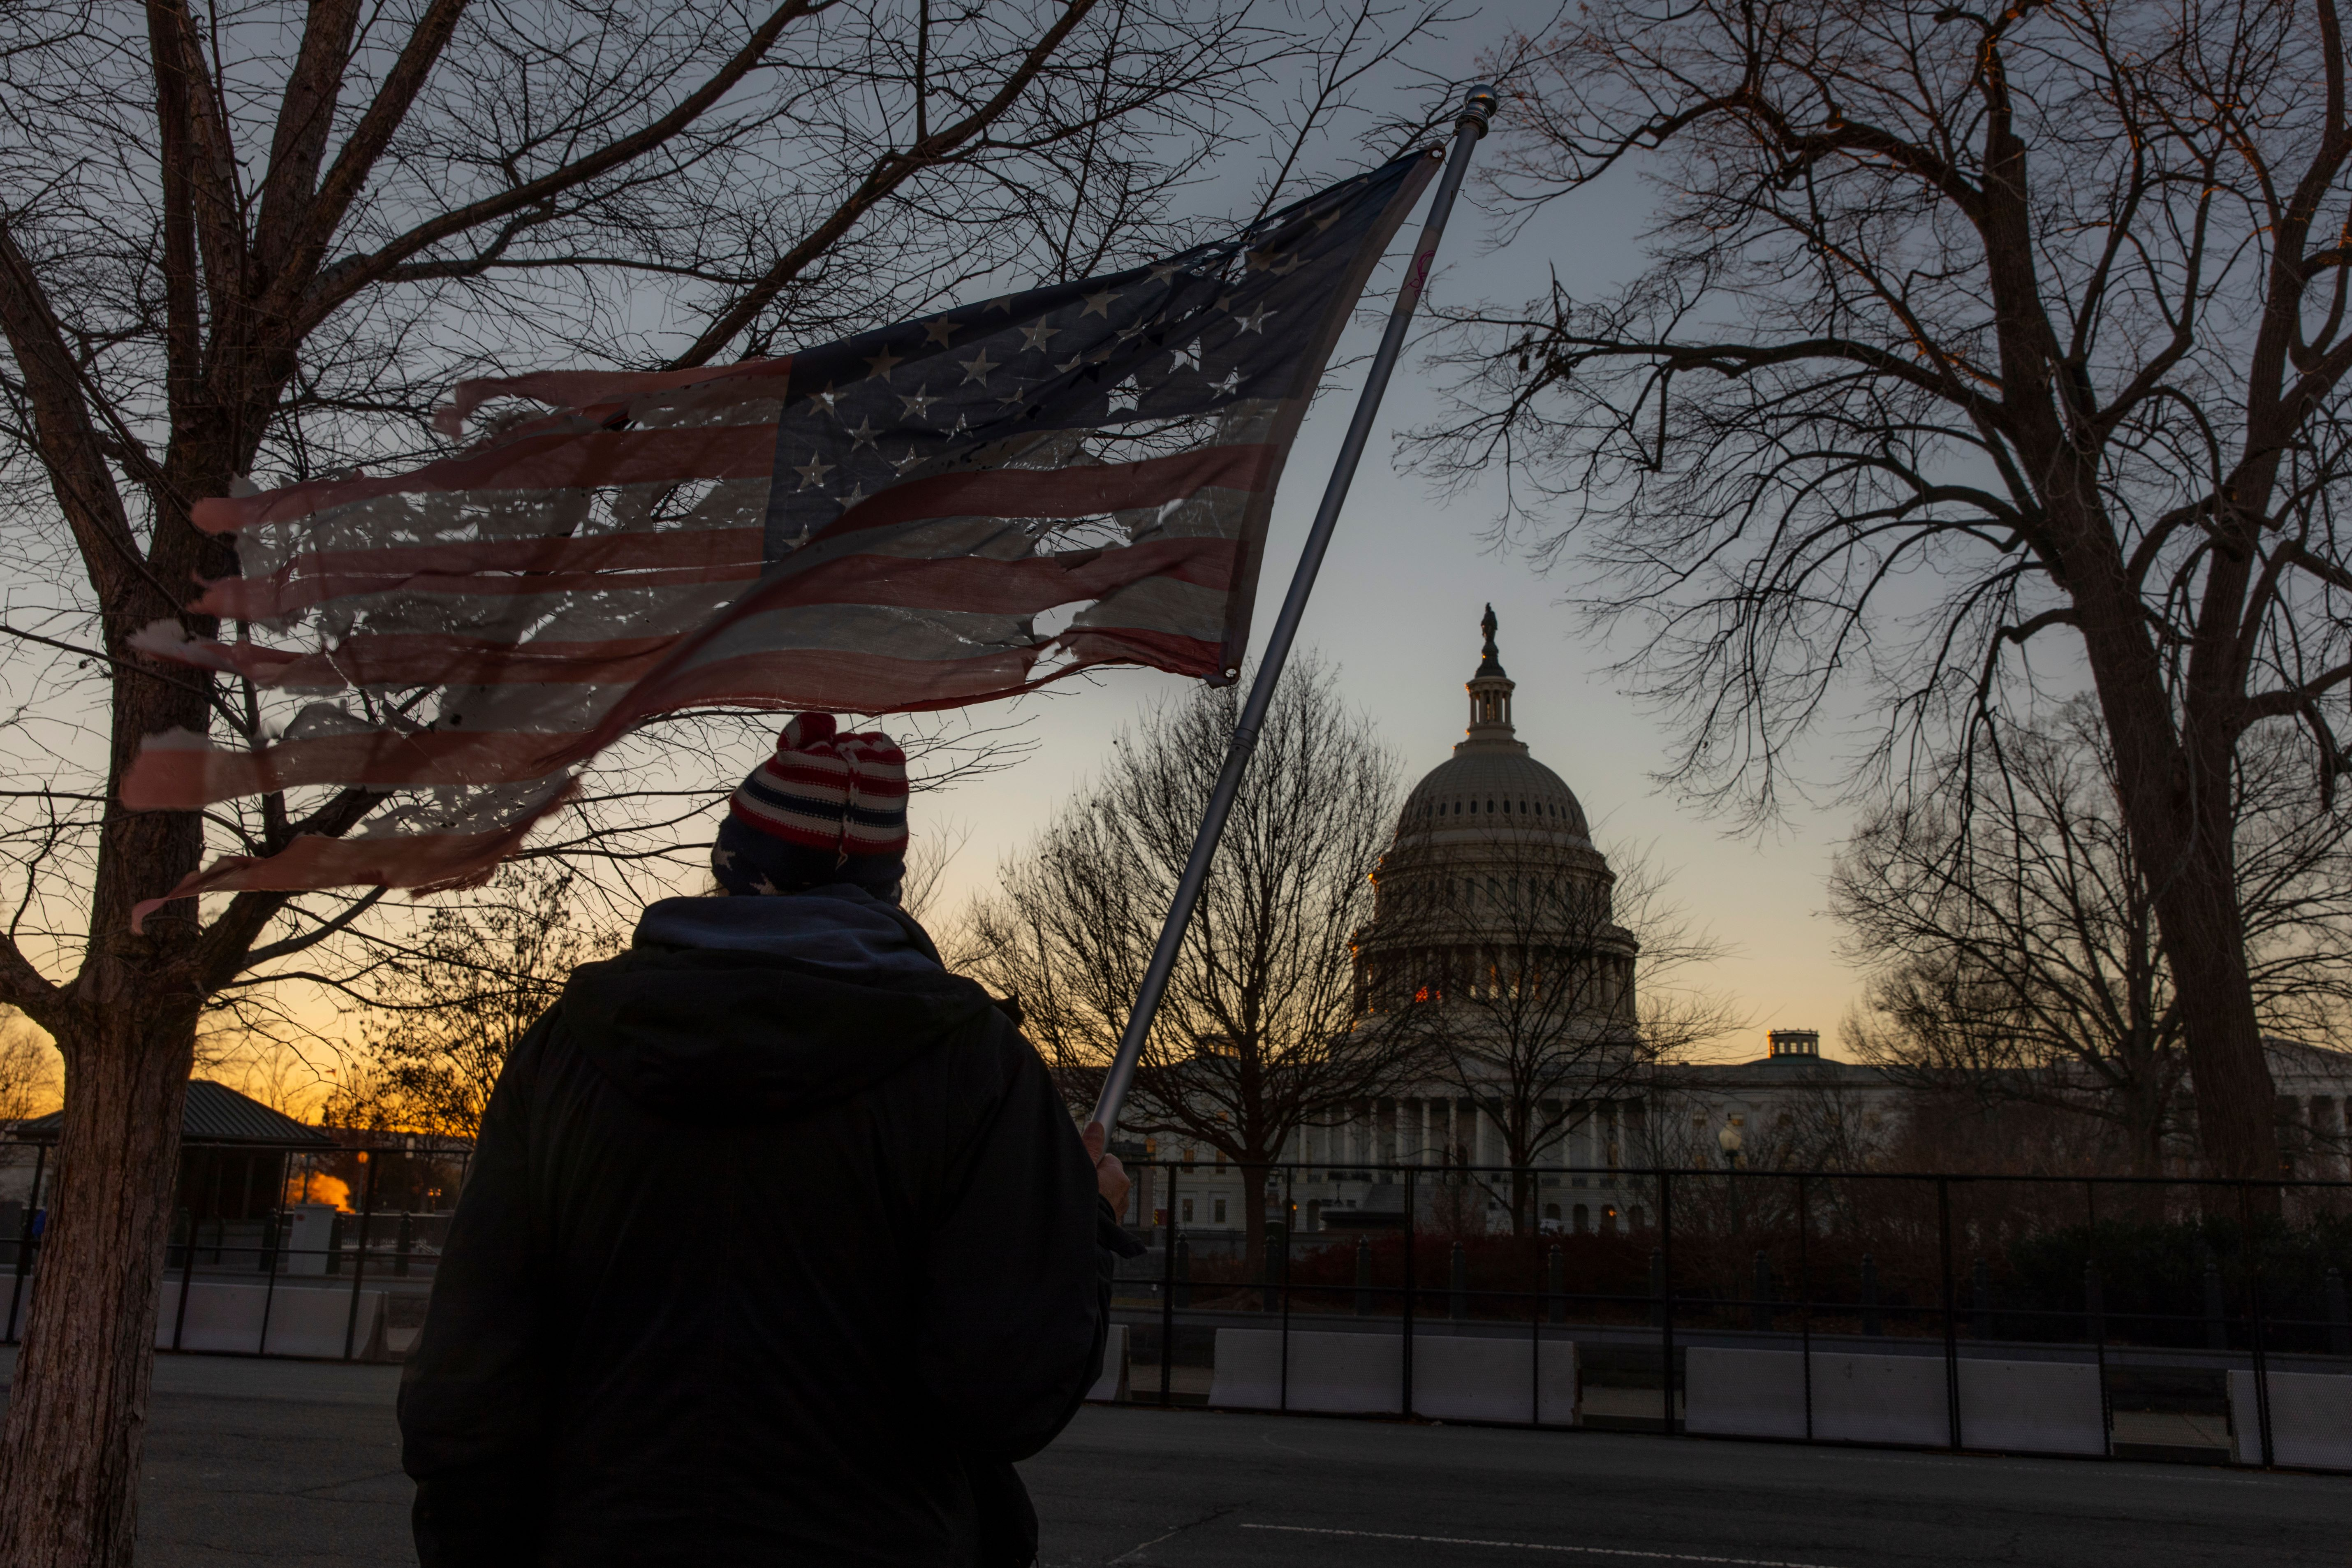 Washington DC, USA - January 9, 2021: A man with a flag watches as additional fencing is installed around the U.S. Capitol after the January 6 riots and ahead of President-Elect Biden's Inauguration.